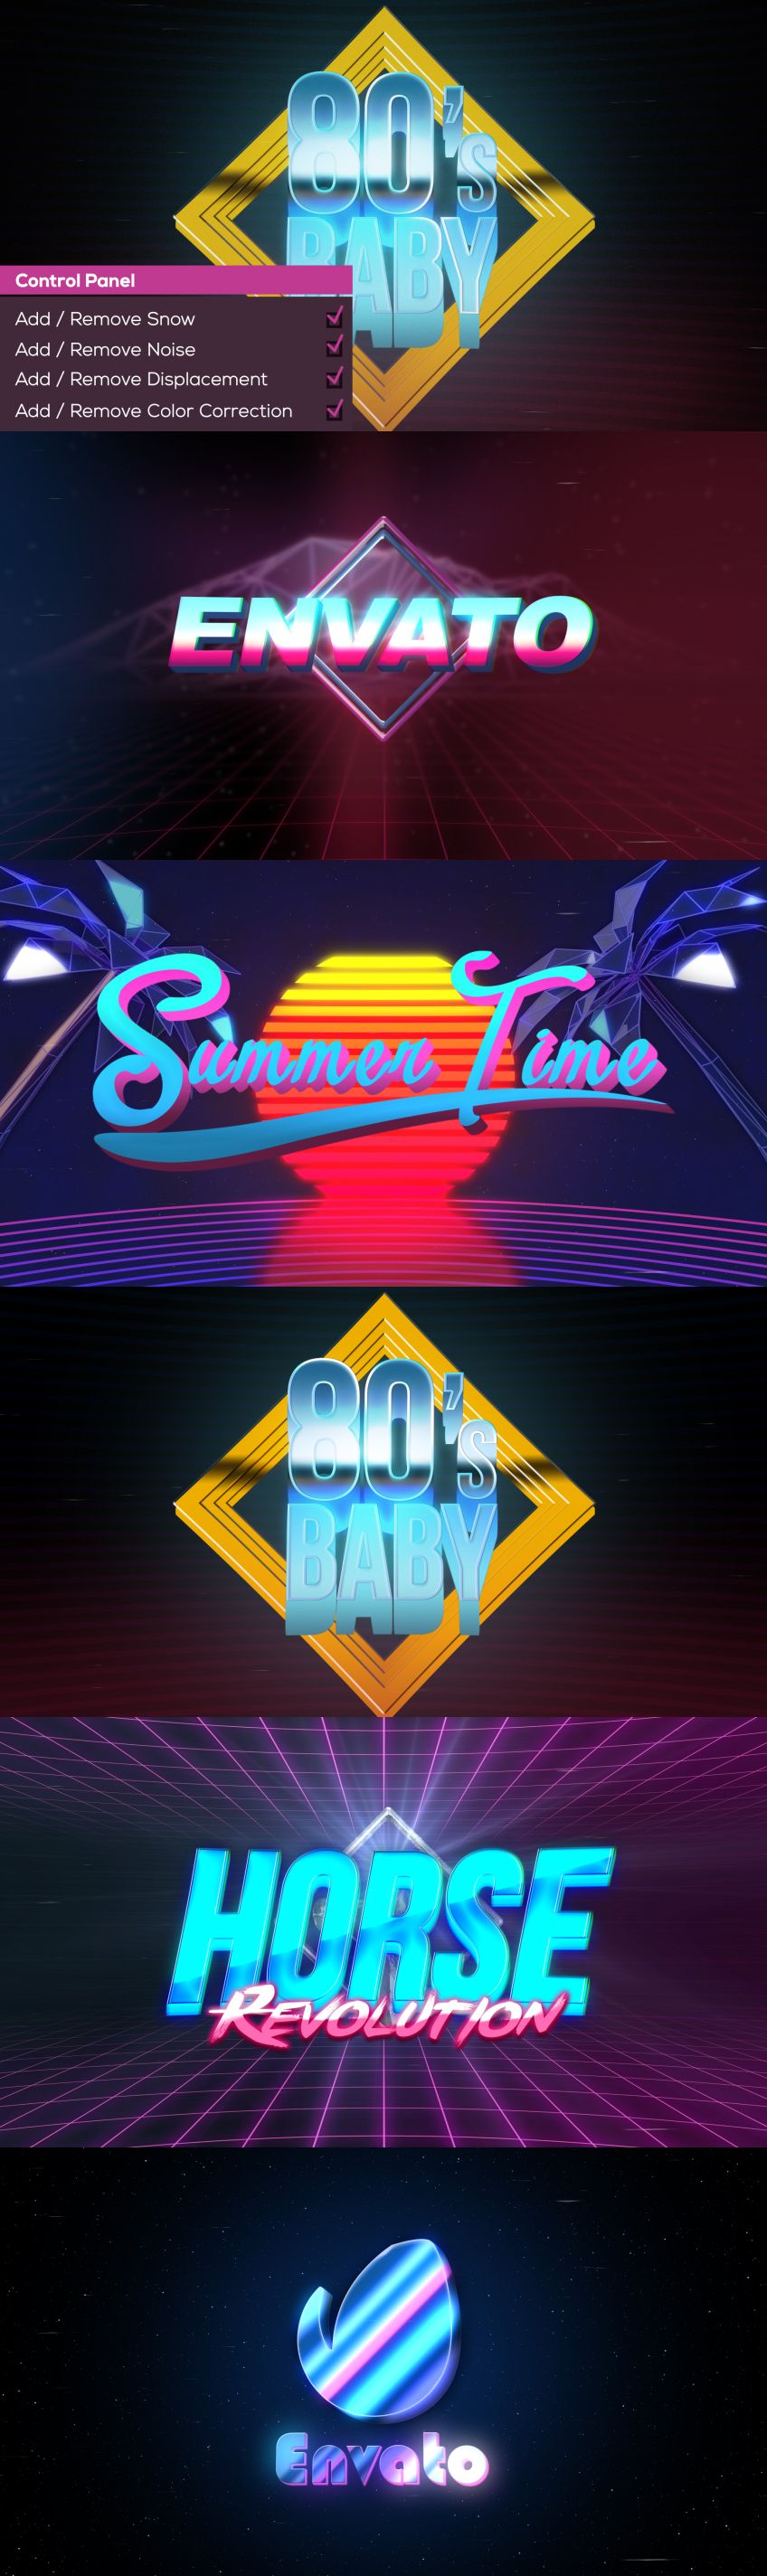 The 80's Baby After Effects template  $33 at Envato  | Adobe After